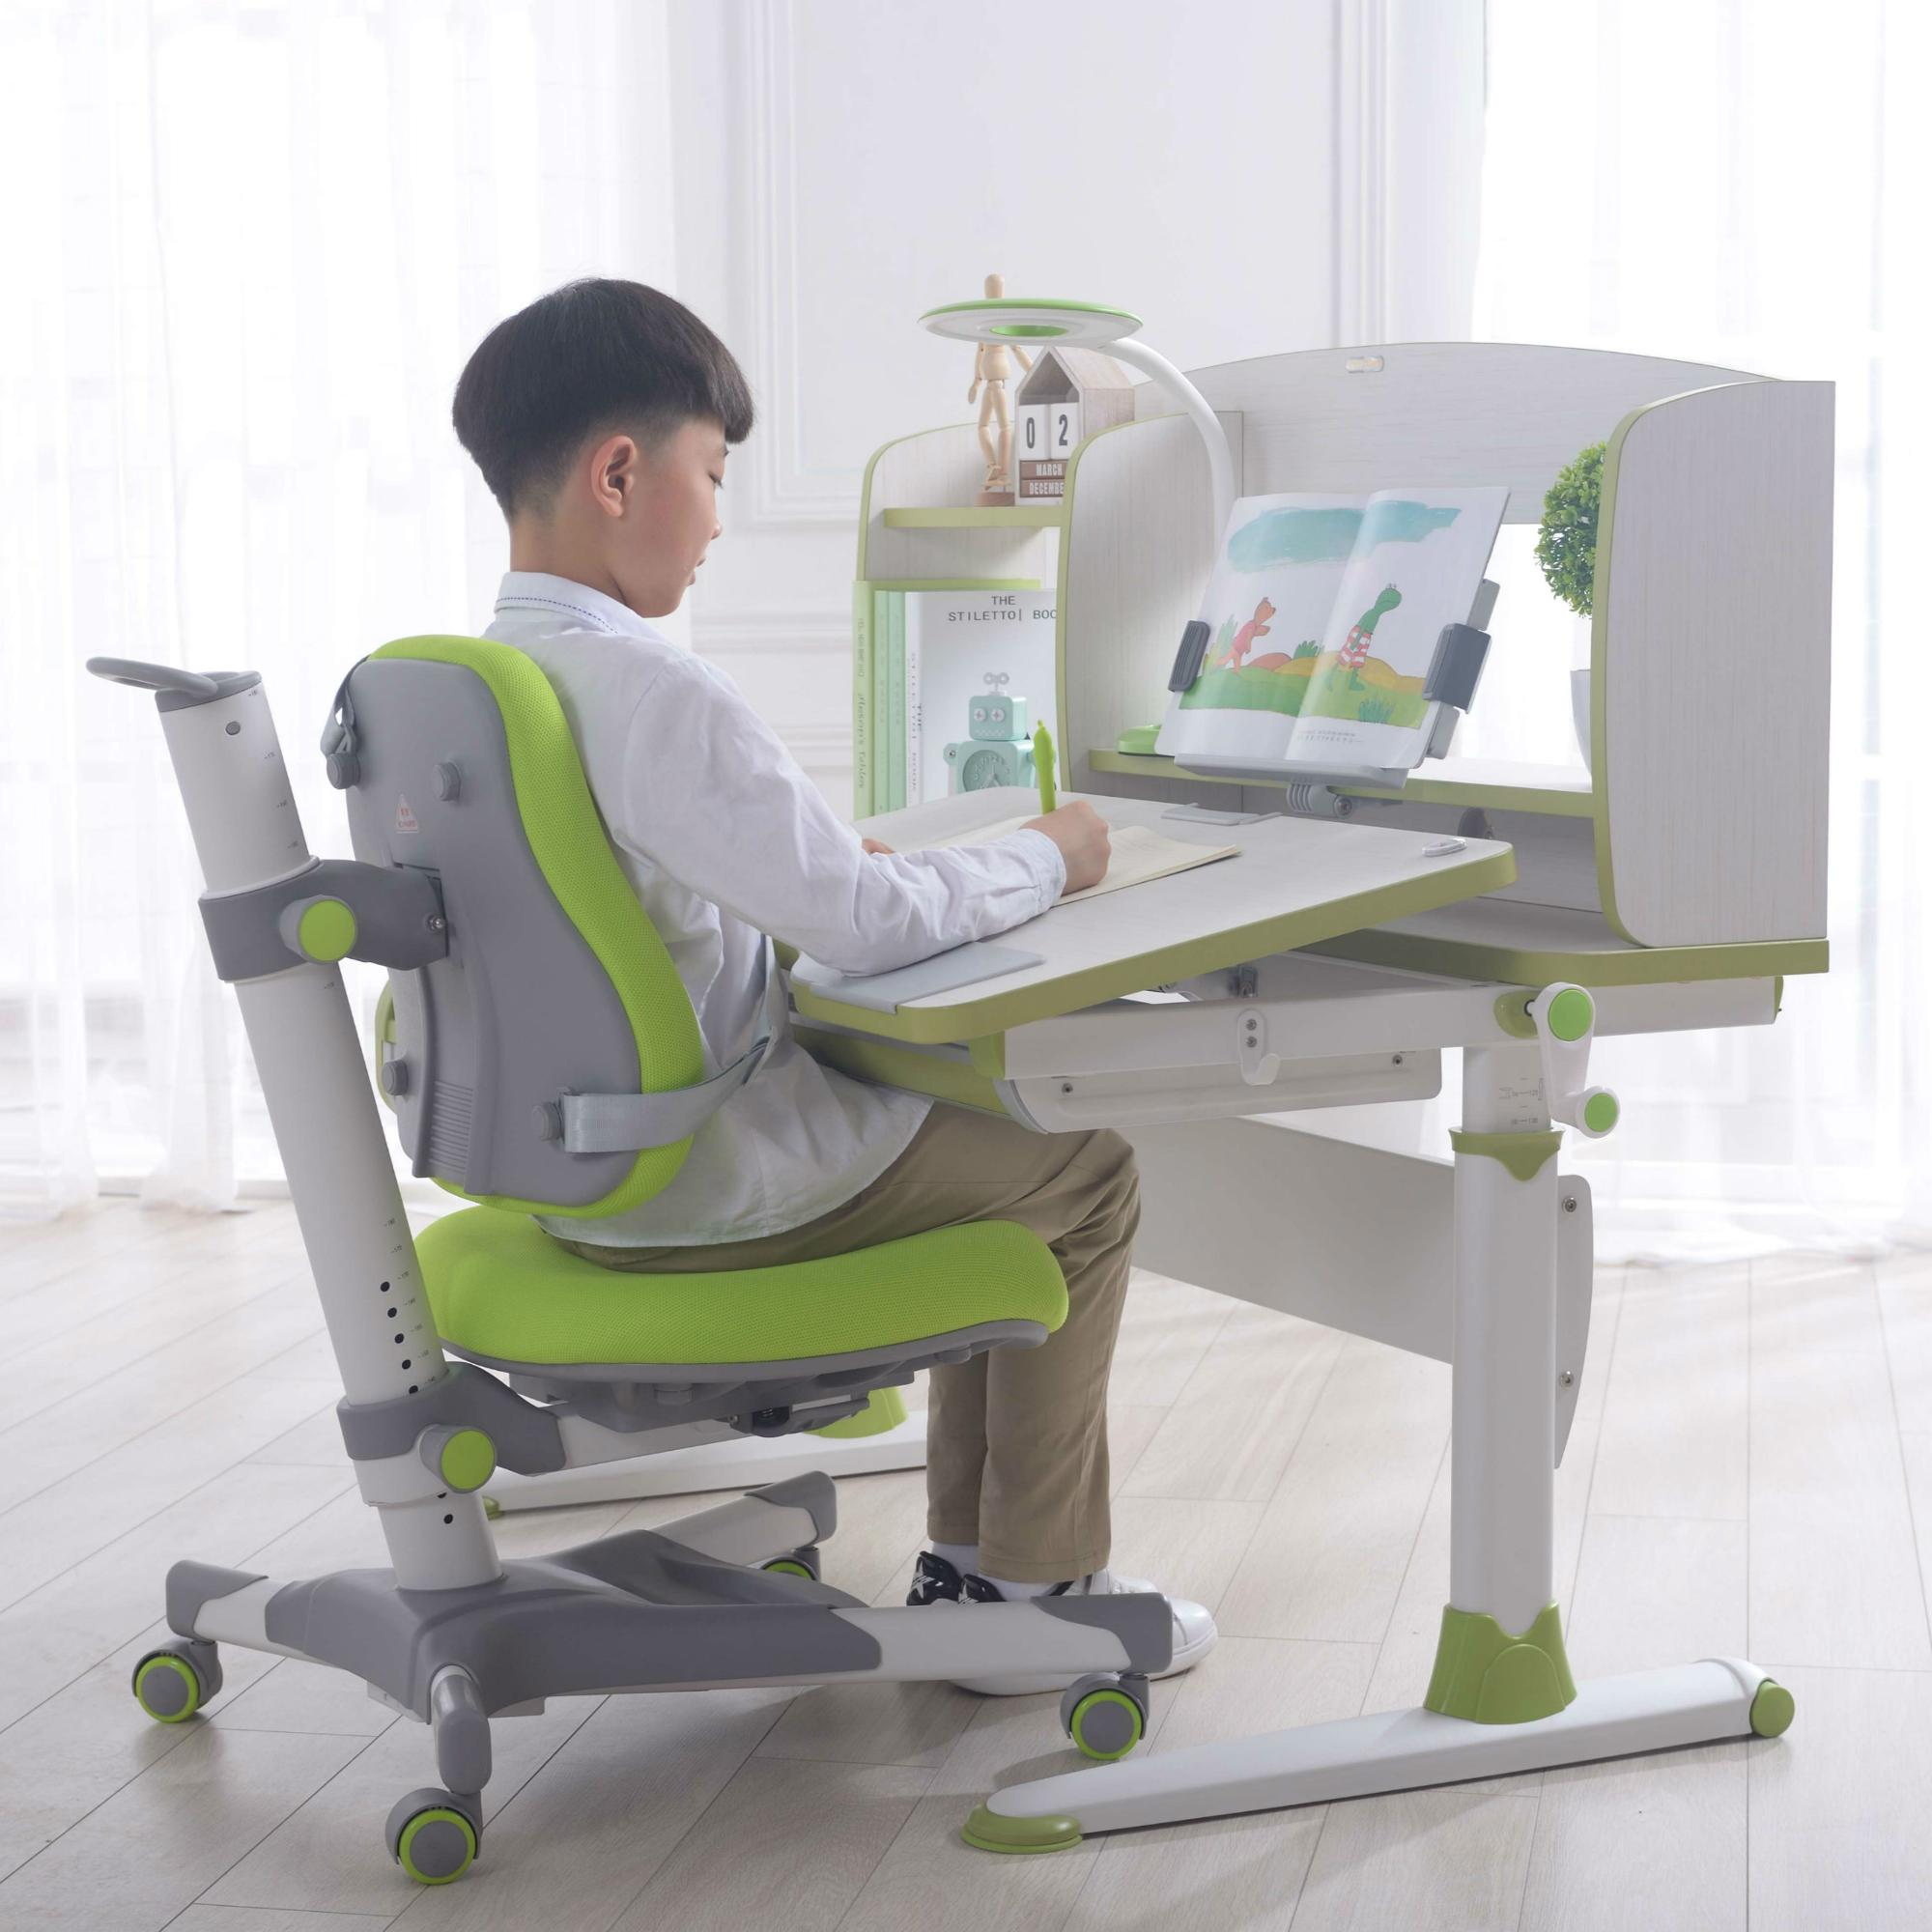 GMYD Ergonomic Height Adjustable Study Desk